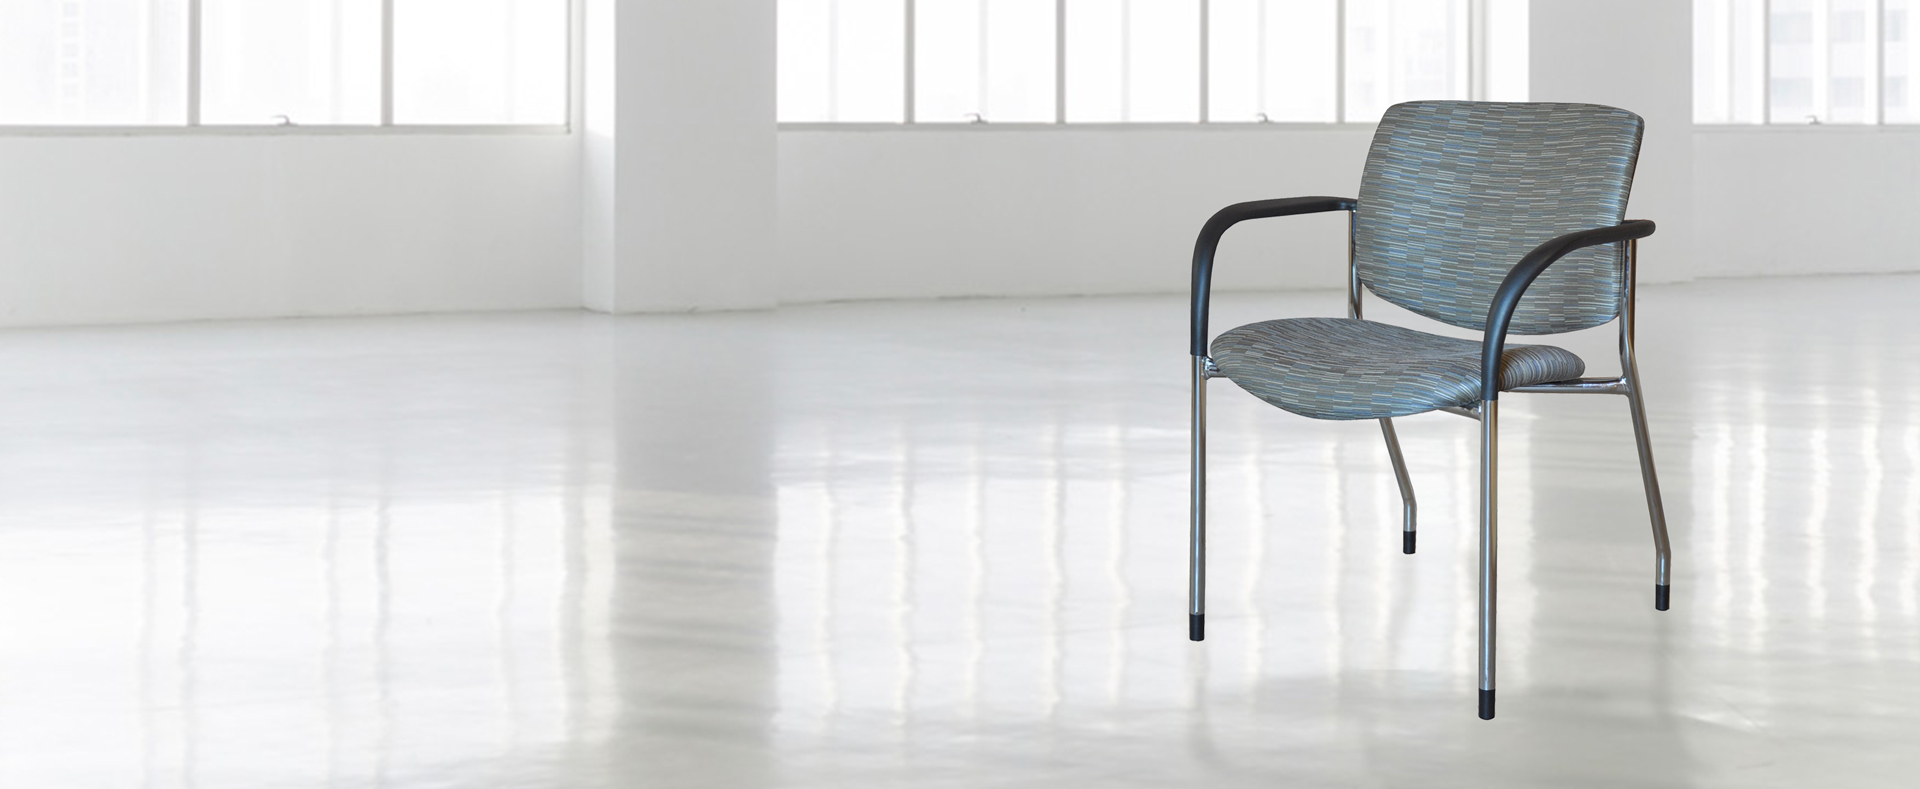 Jem lobby chair with black arms and chrome frame